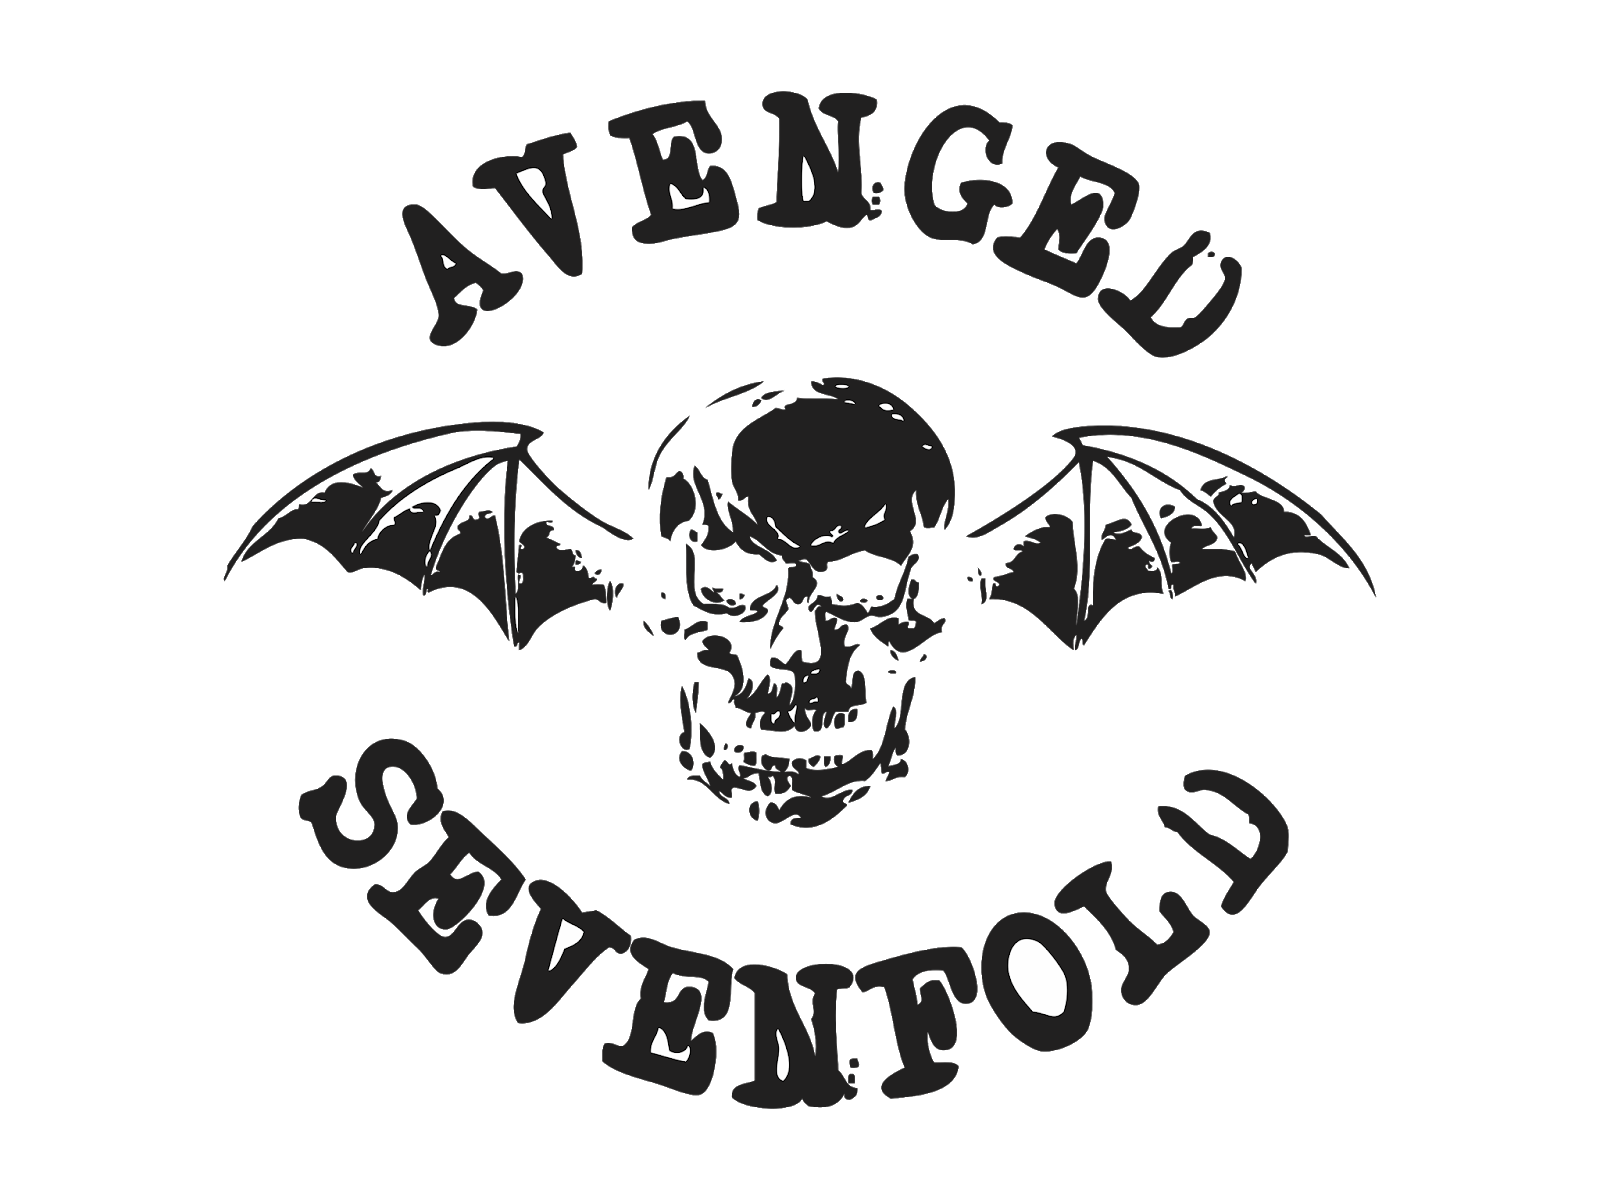 Disturbed logo clipart graphic freeuse stock Avenged Sevenfold Logo Disturbed Black and white Stencil - avengers ... graphic freeuse stock